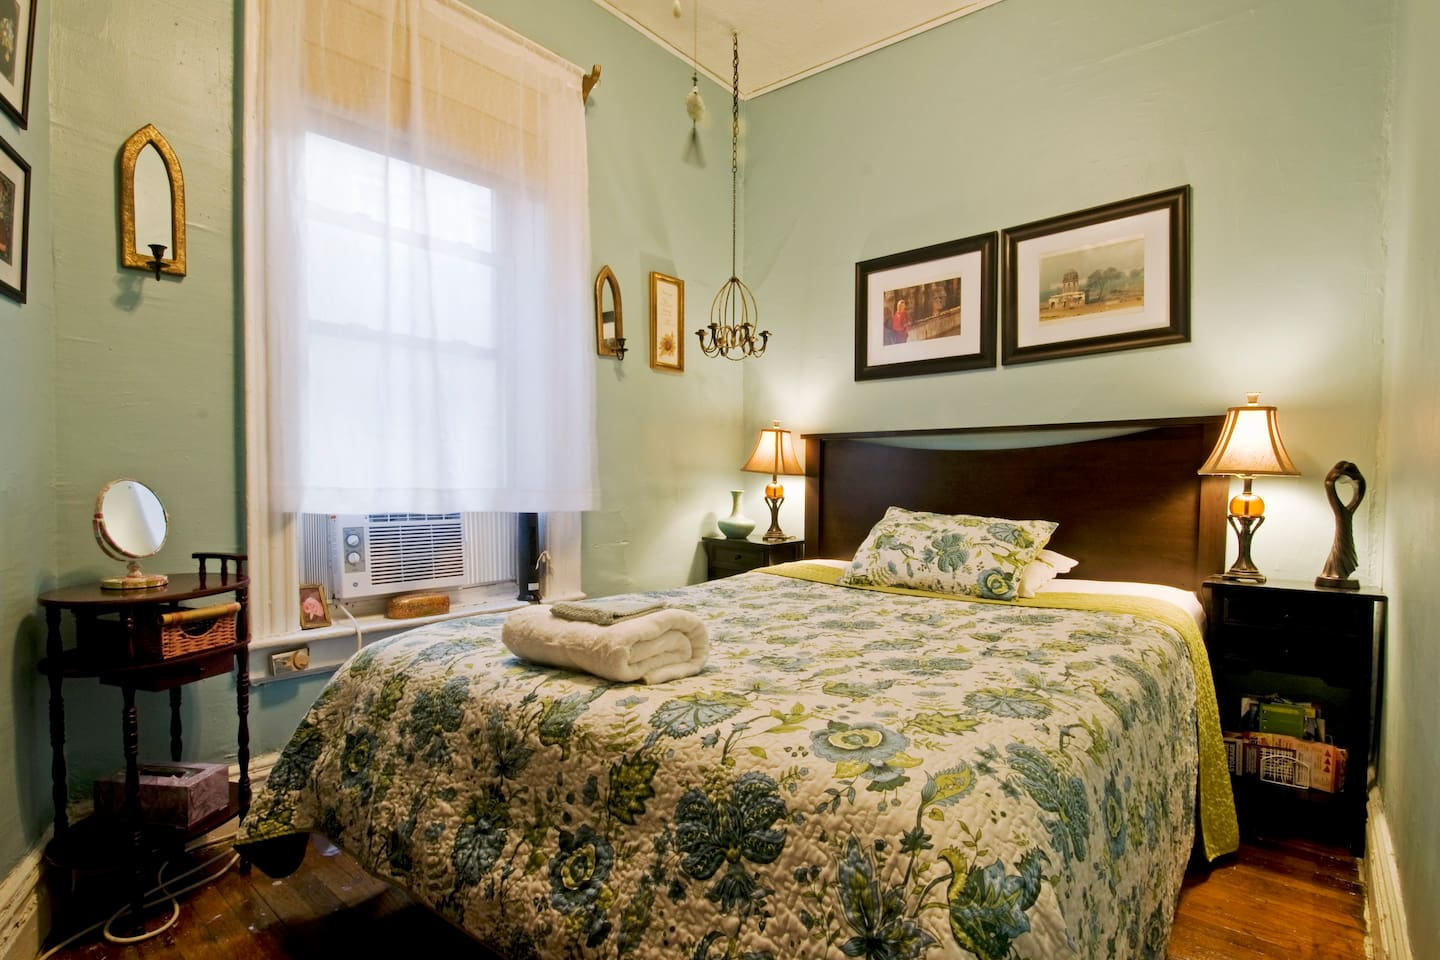 the guest bedroom with a queen size bed